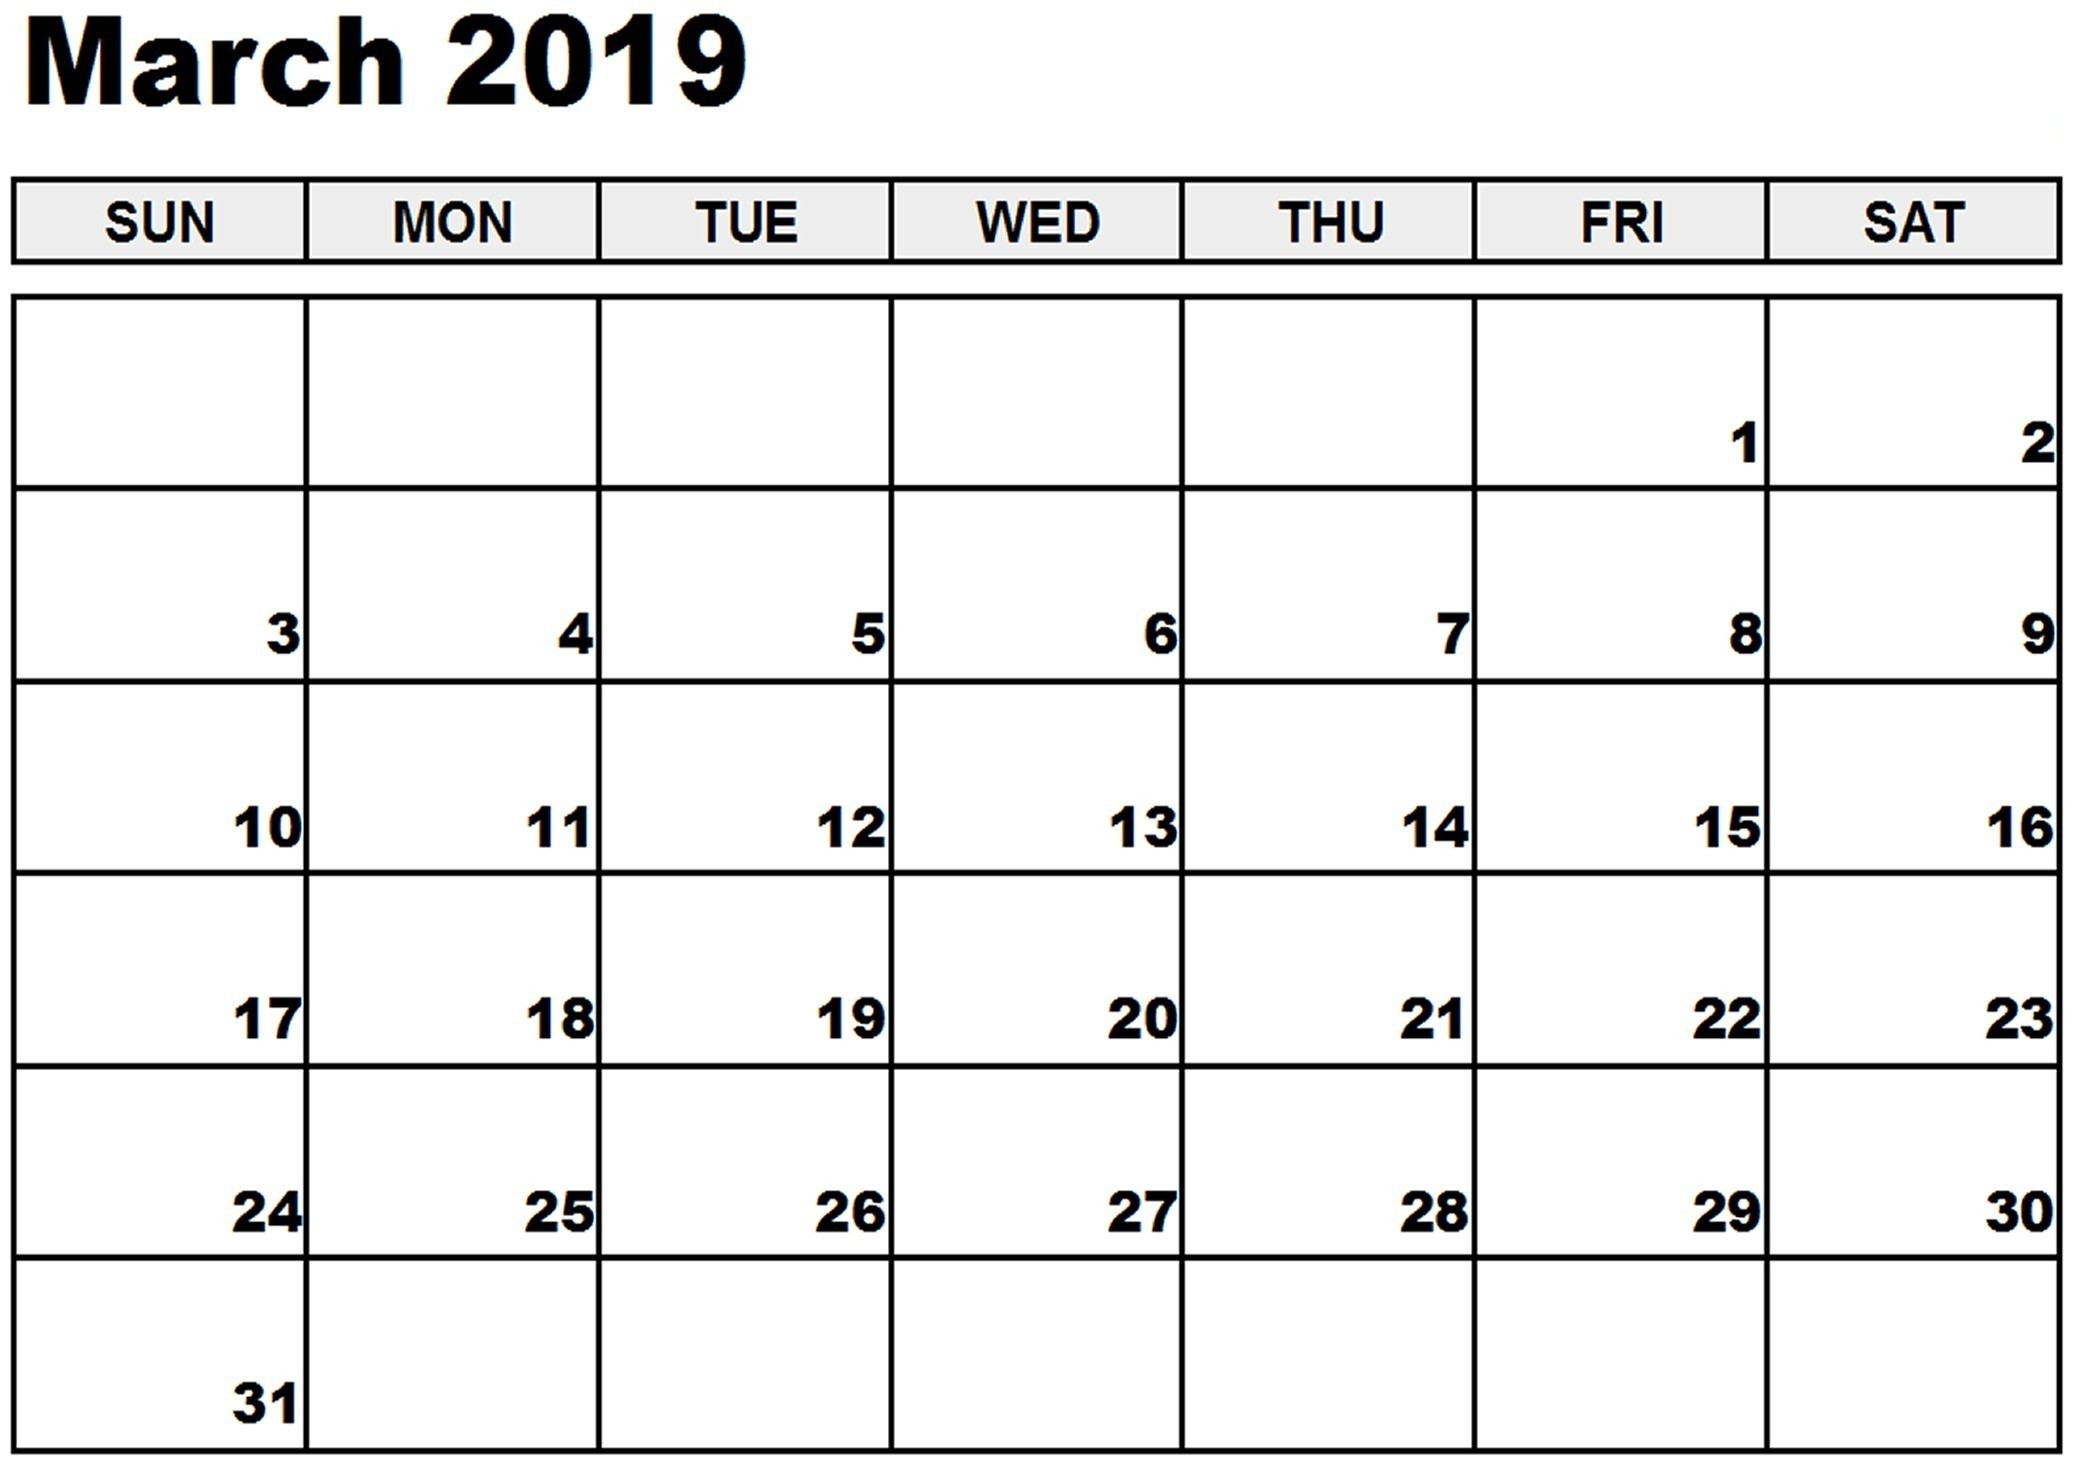 March Holiday Calendar 2019 Actual Free March 2019 Printable Calendar Templates Calendar Hour 2019 Of March Holiday Calendar 2019 Mejores Y Más Novedosos March 2019 Calendar Printable with Holidays